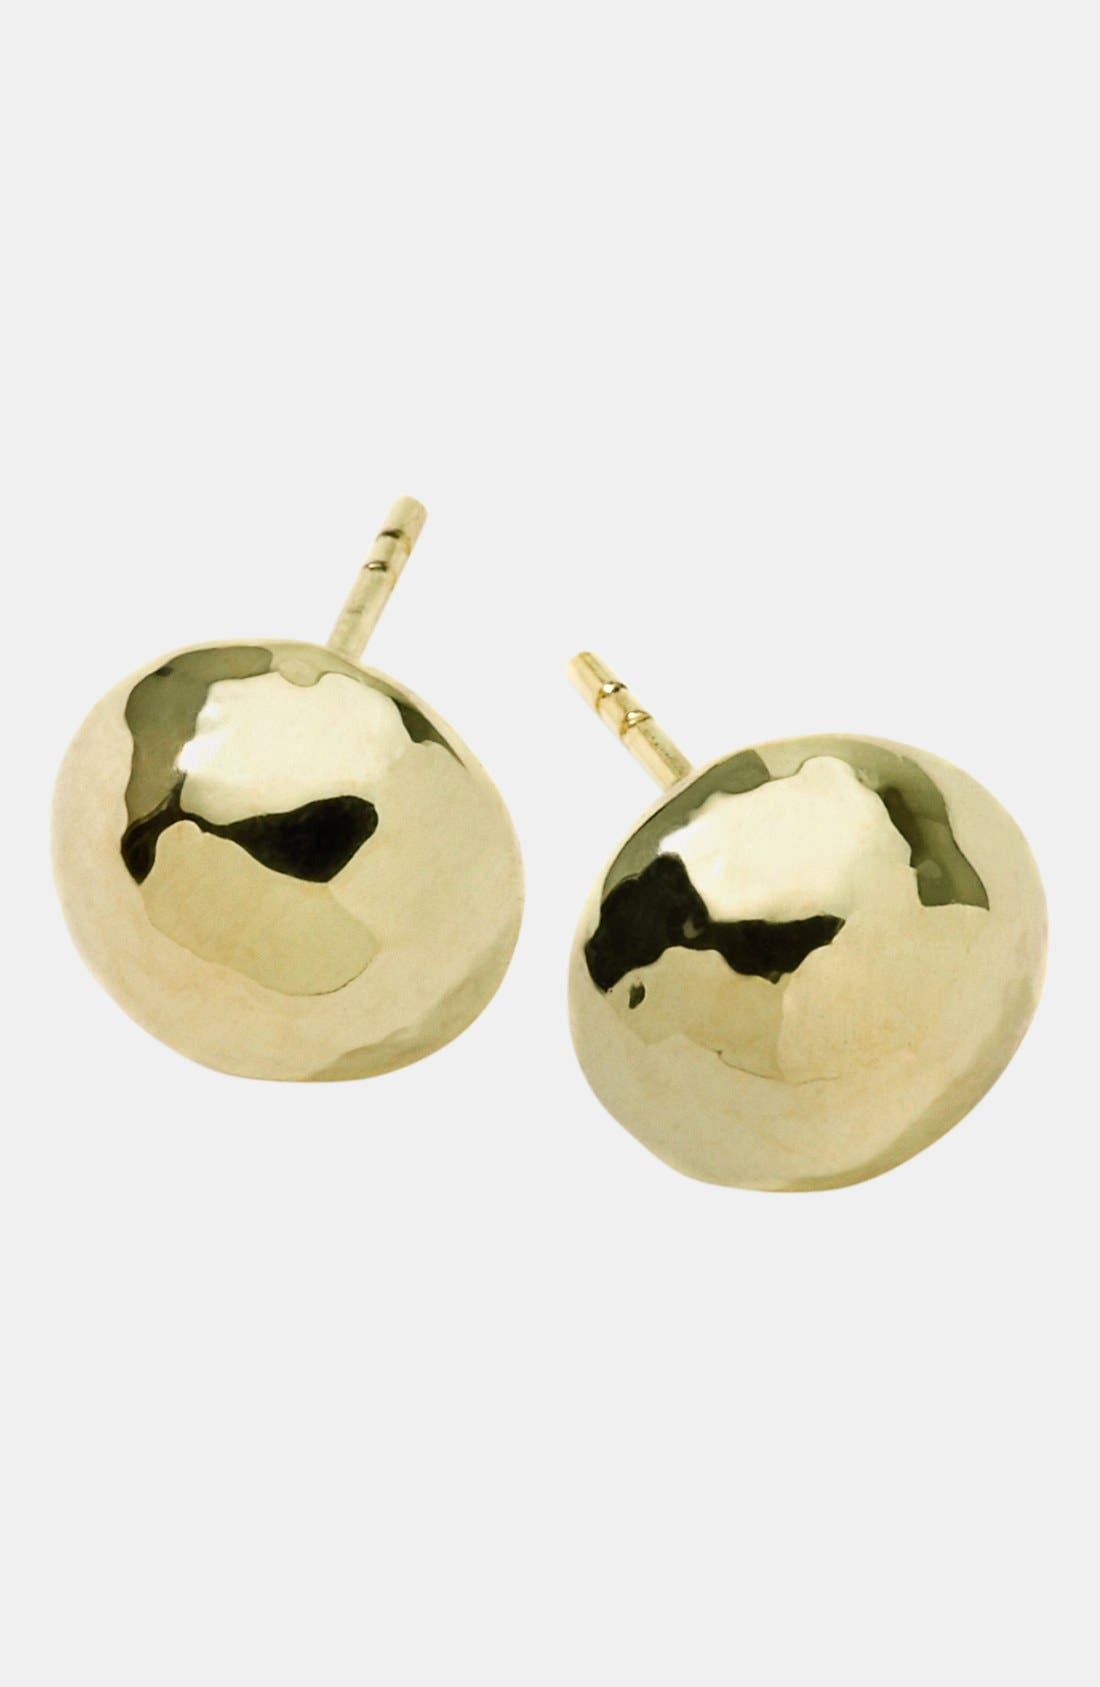 'Glamazon' 18k Gold Hammered Ball Earrings,                         Main,                         color, YELLOW GOLD